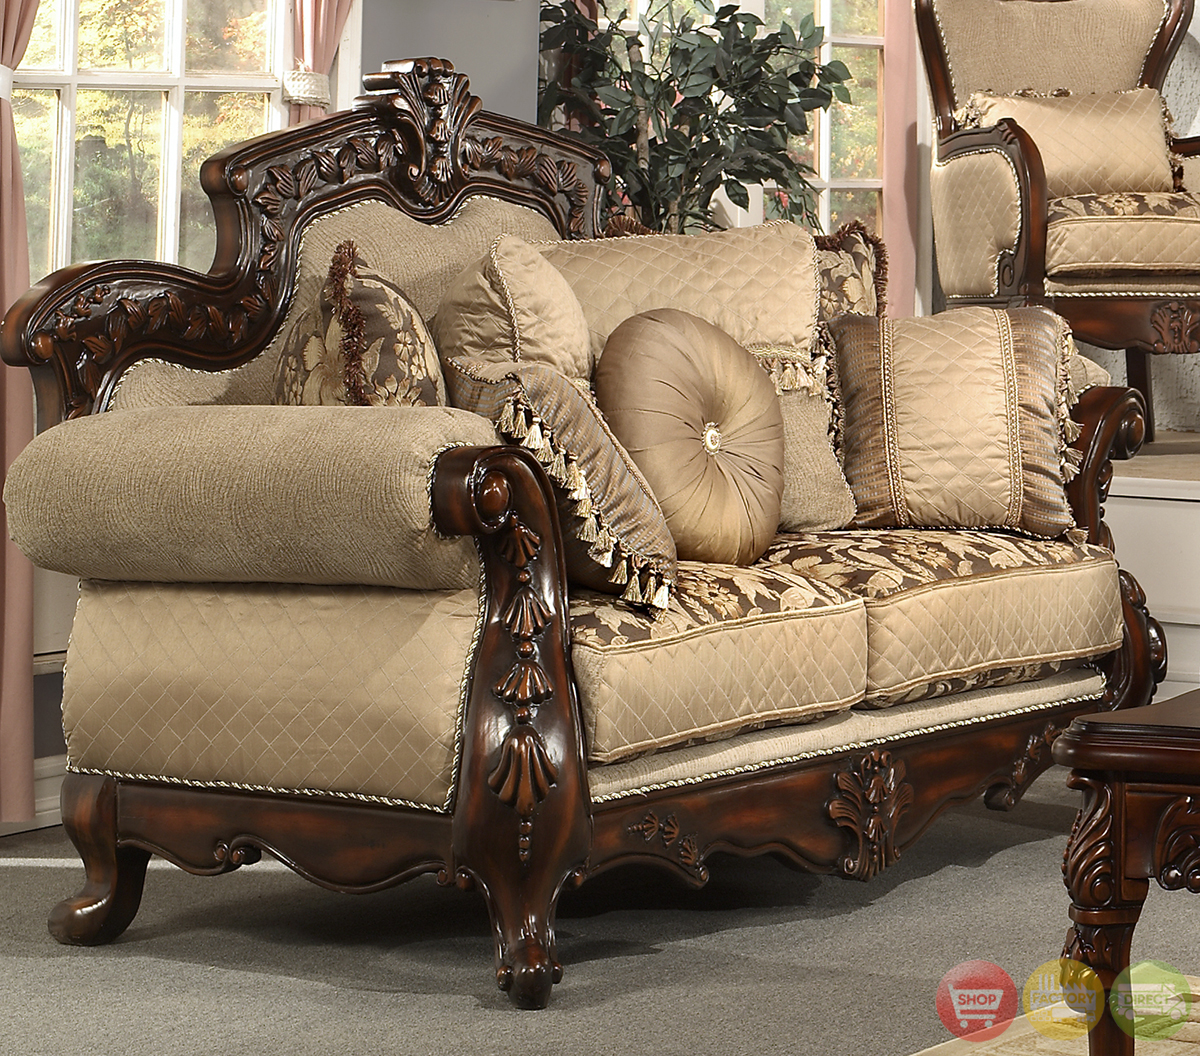 Formal living room antique style luxury sofa set hd 296 Antique loveseat styles